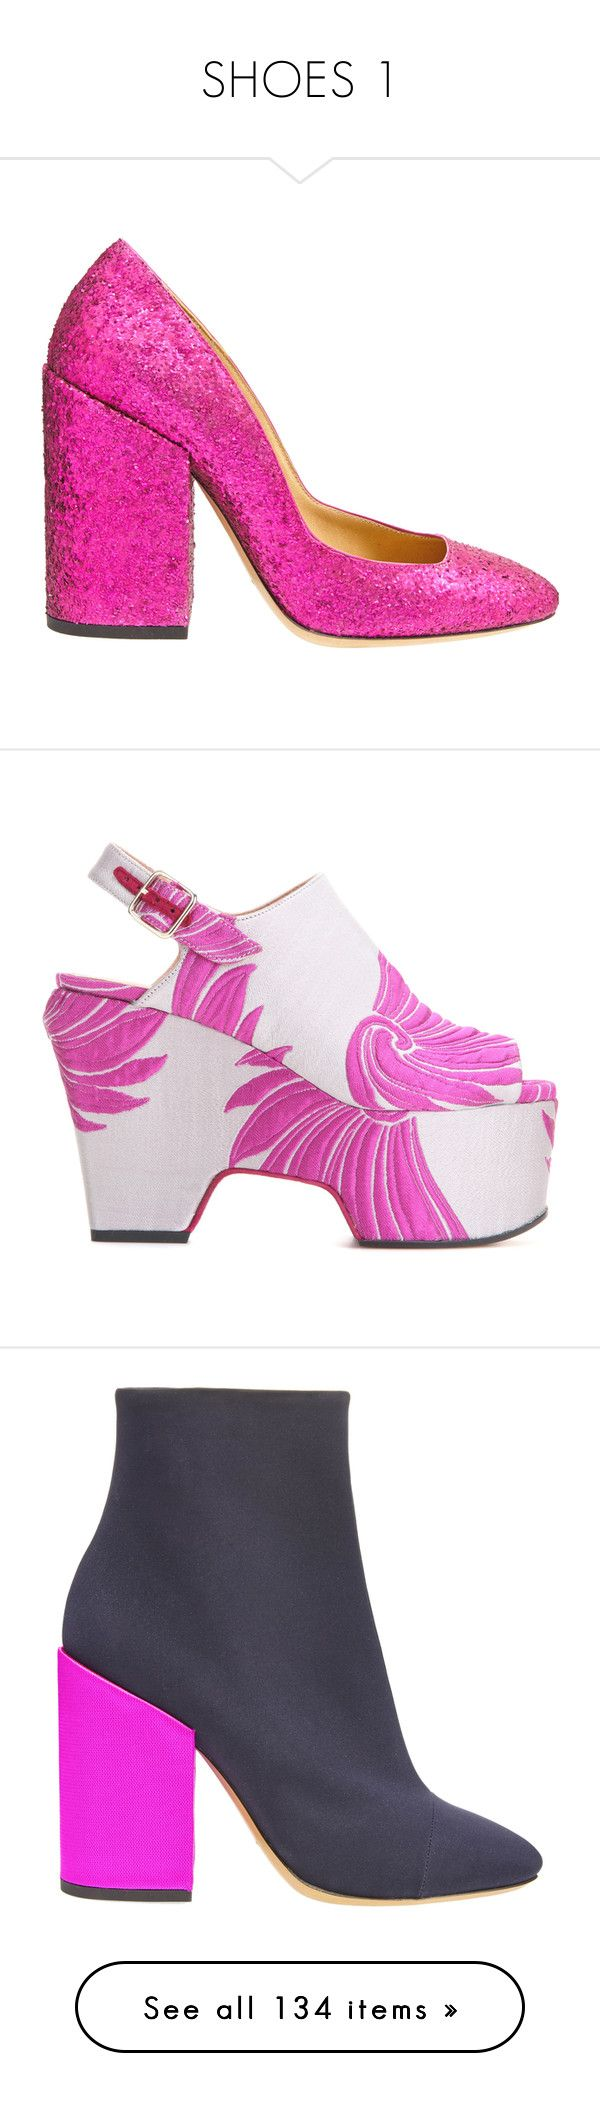 """""""SHOES 1"""" by tamara-40 ❤ liked on Polyvore featuring shoes, pumps, fuchsia, dries van noten shoes, dries van noten pumps, sparkly pumps, fuschia shoes, high heel shoes, sandals and white sandals"""